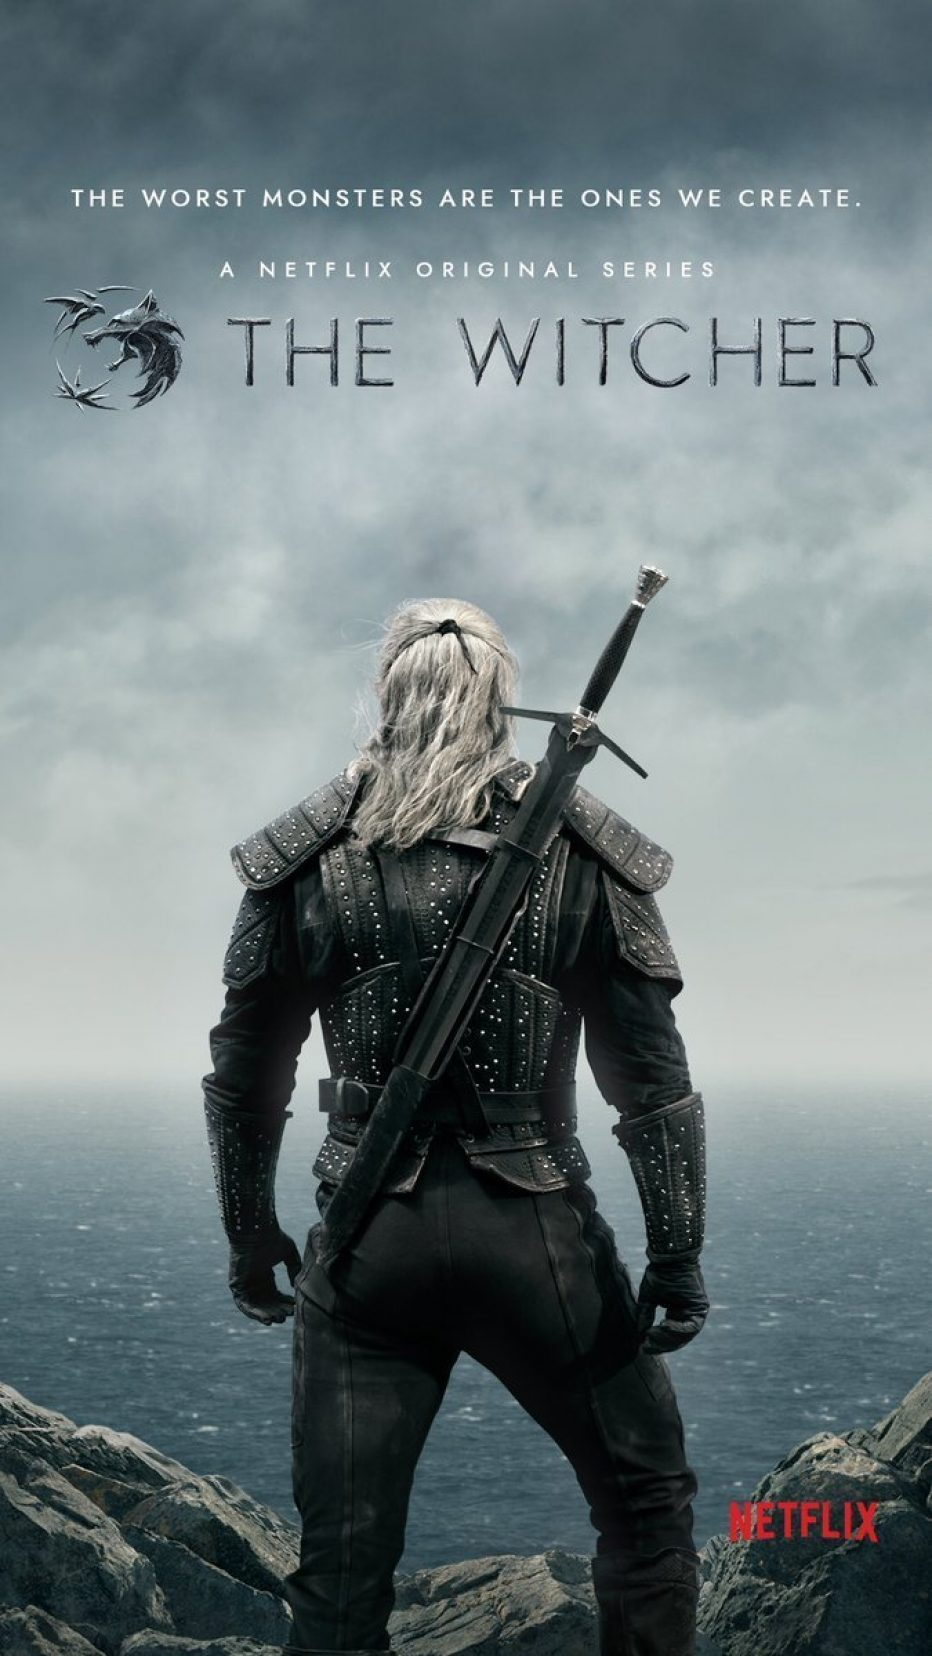 The-Witcher-Netflix-Gamers-Heroes-3.jpg